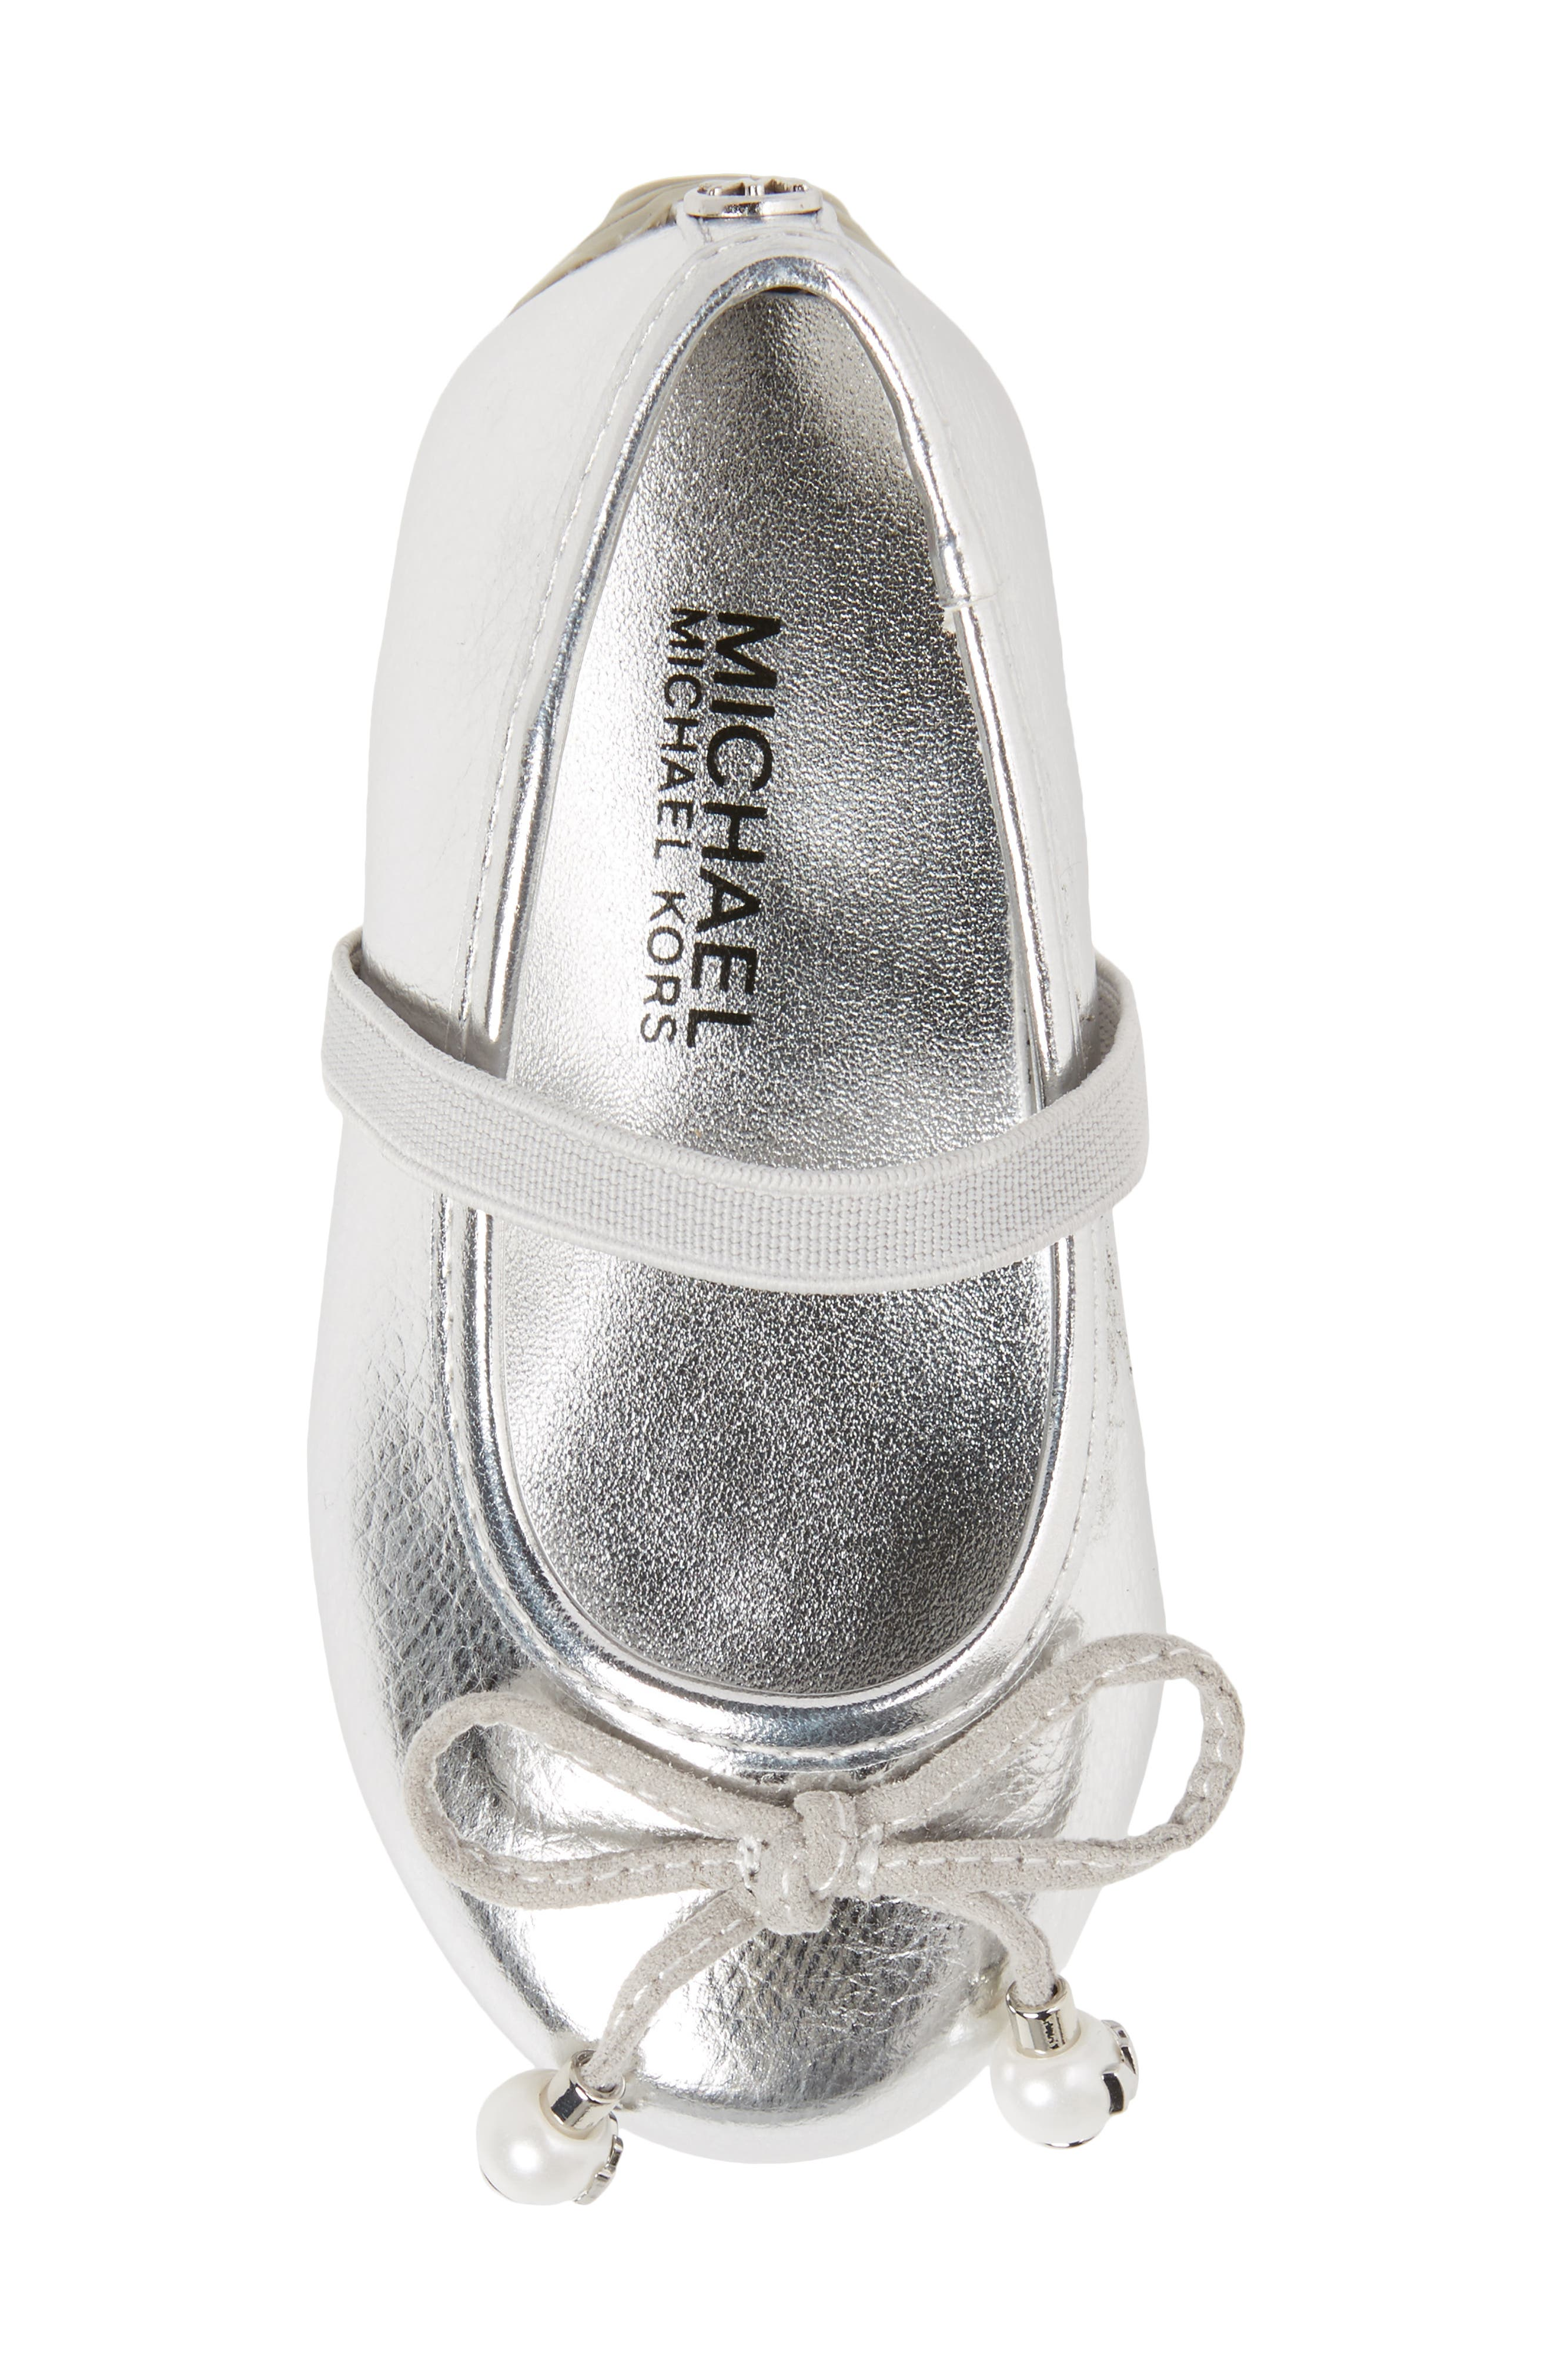 Rover Ting Ballet Flat,                             Alternate thumbnail 5, color,                             Silver